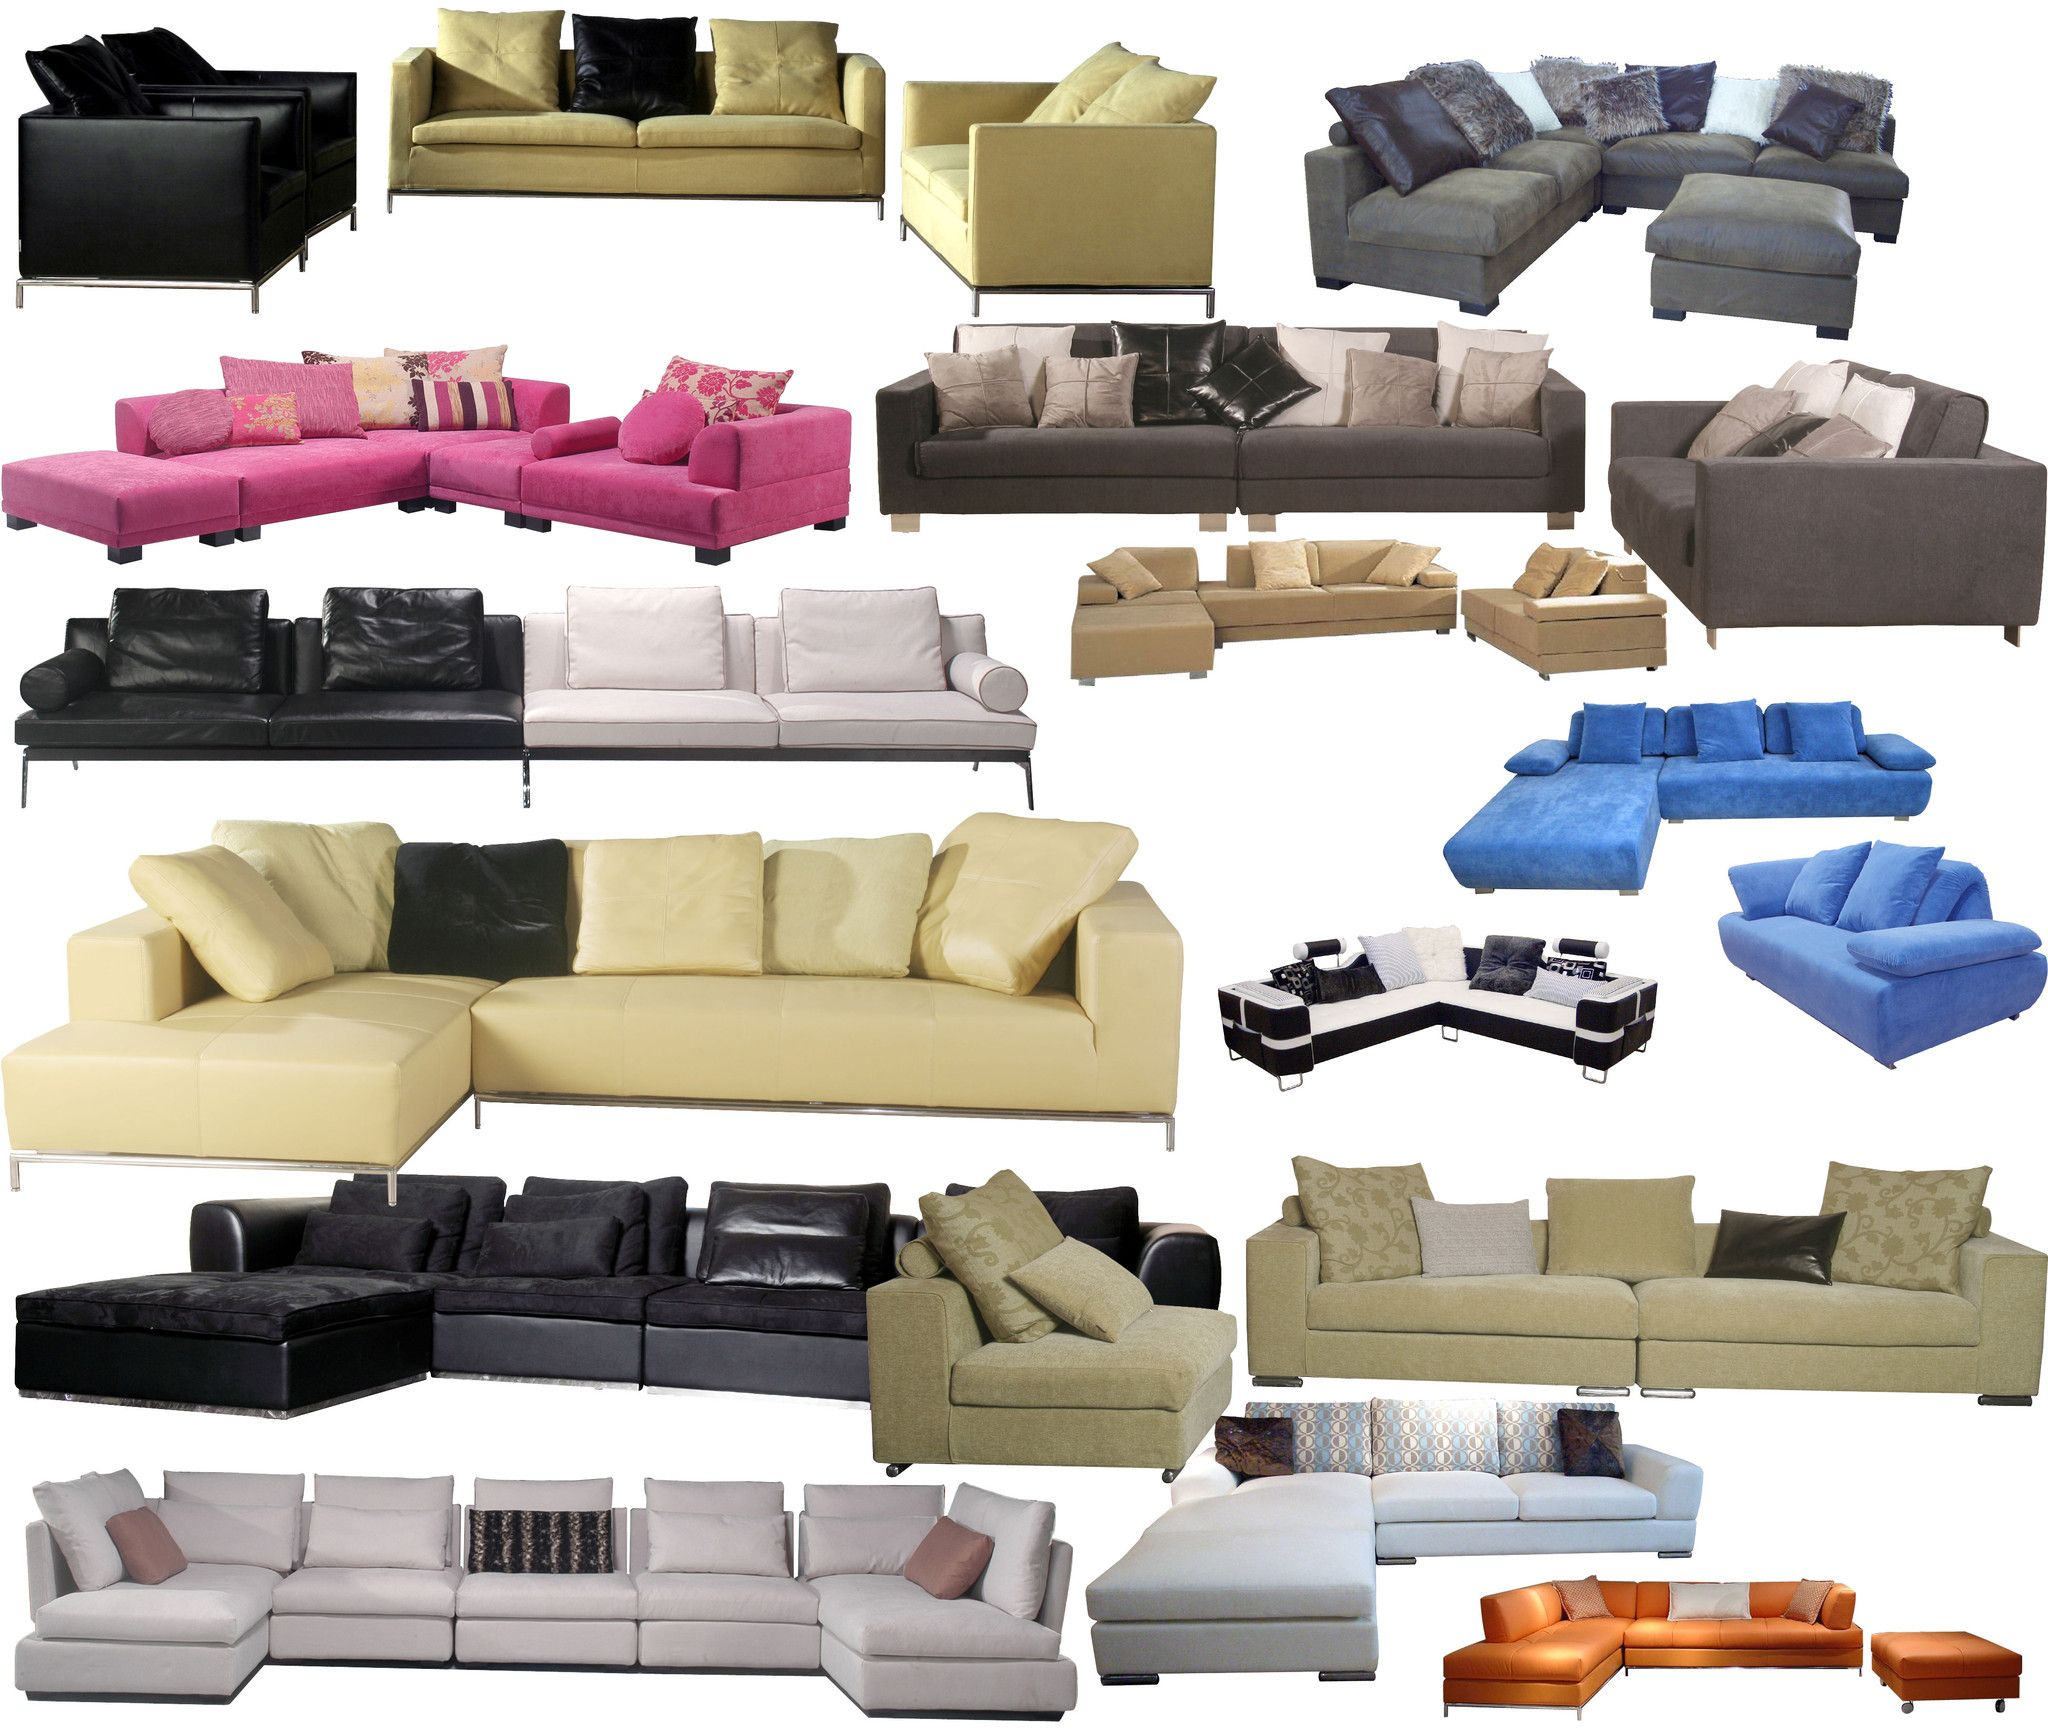 Photoshop Psd Sofa And Chair Blocks V3 Furniture Residential Interior Design Small Bedroom Furniture